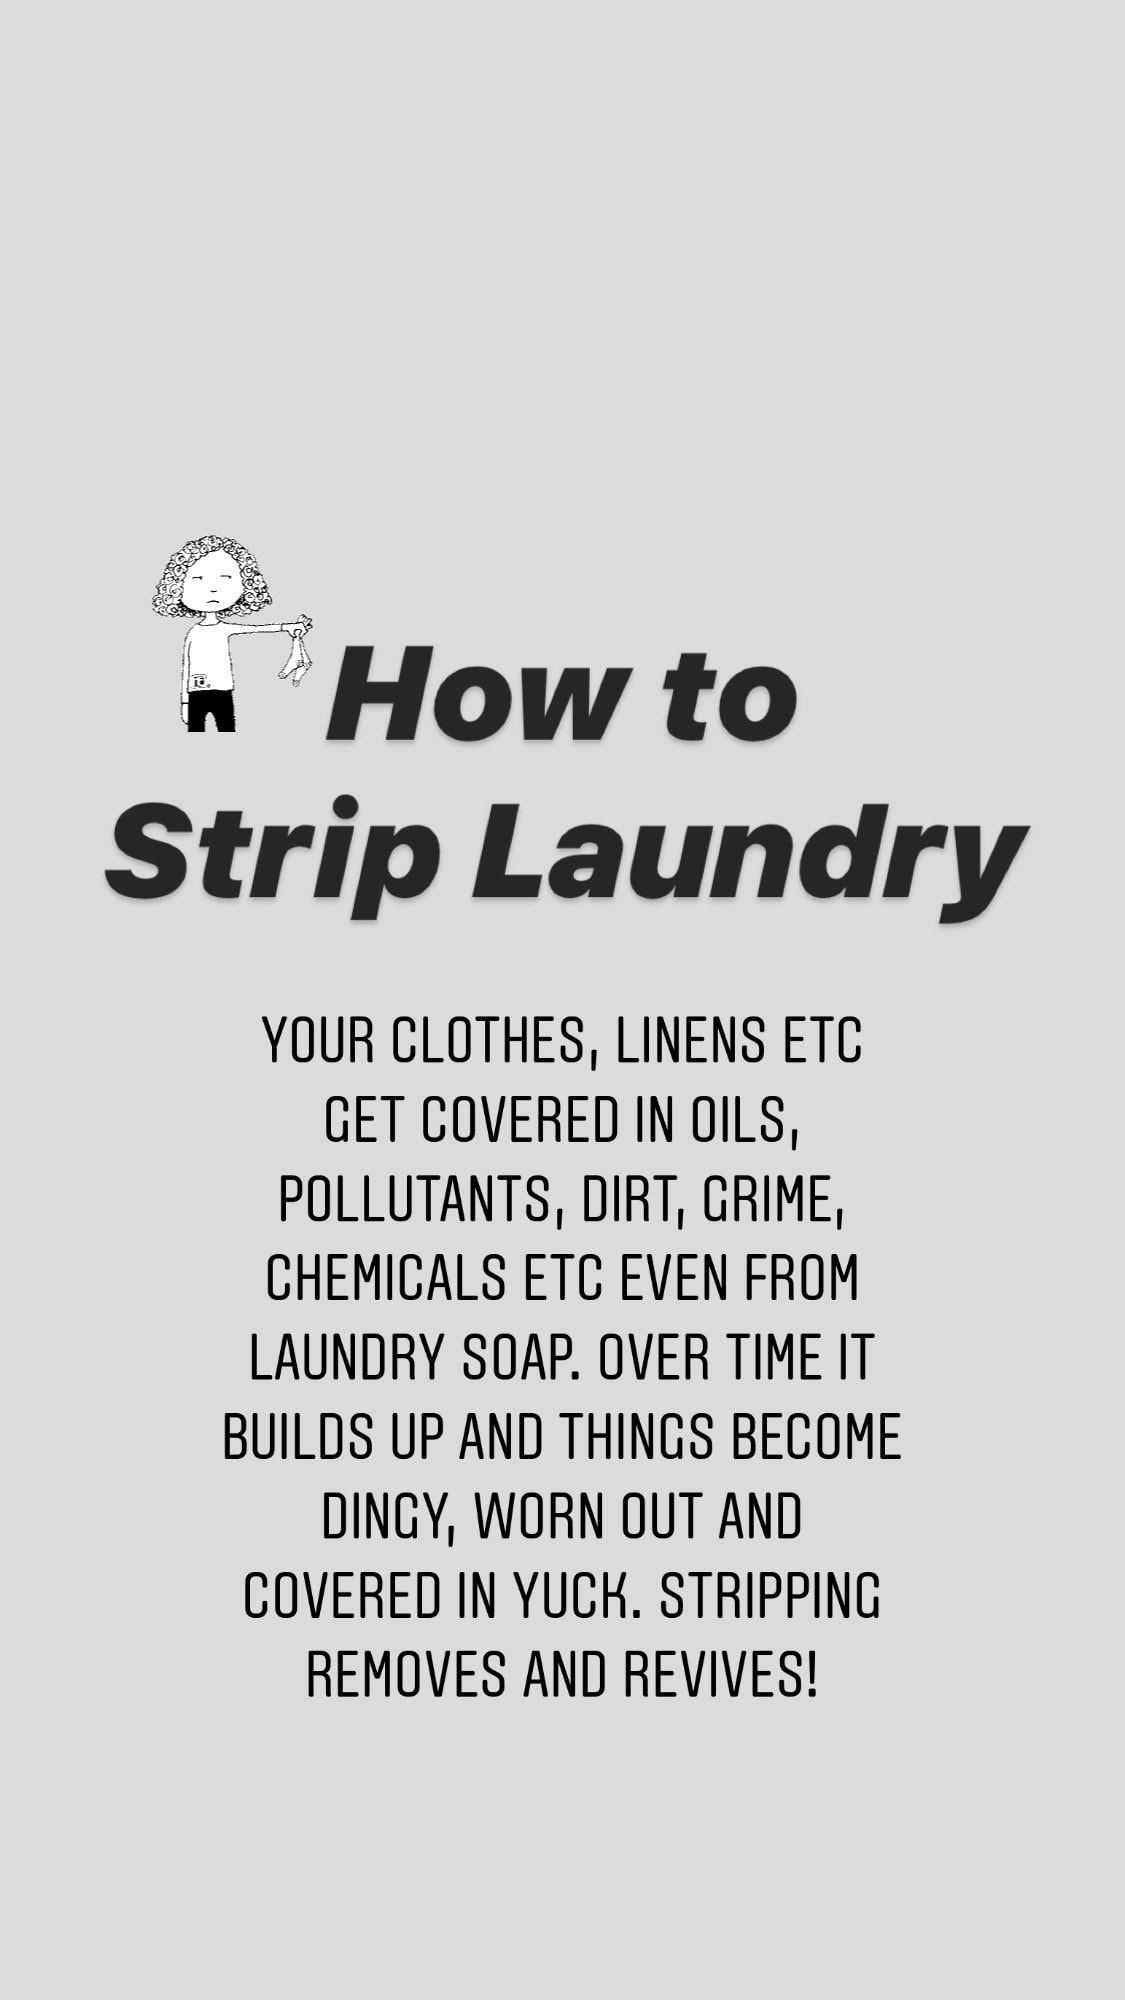 how to strip laundry